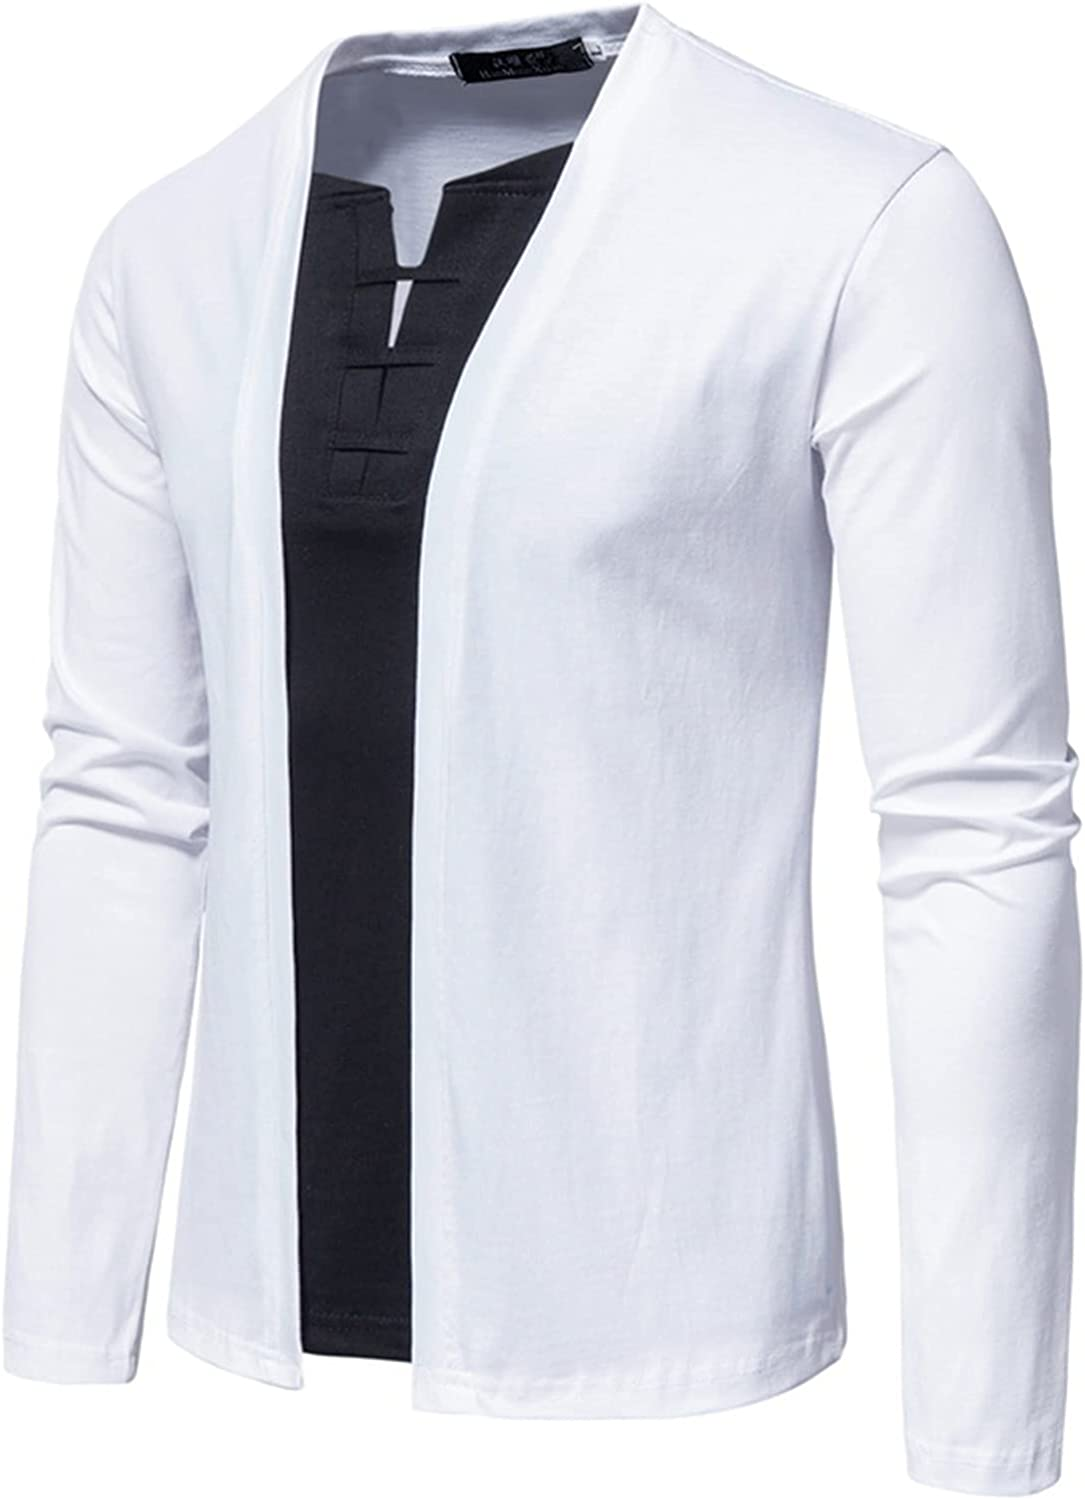 Men's Casual V-neck Long-sleeved False Two Pullover Shirt Henley T Shirts of Cotton Shirts